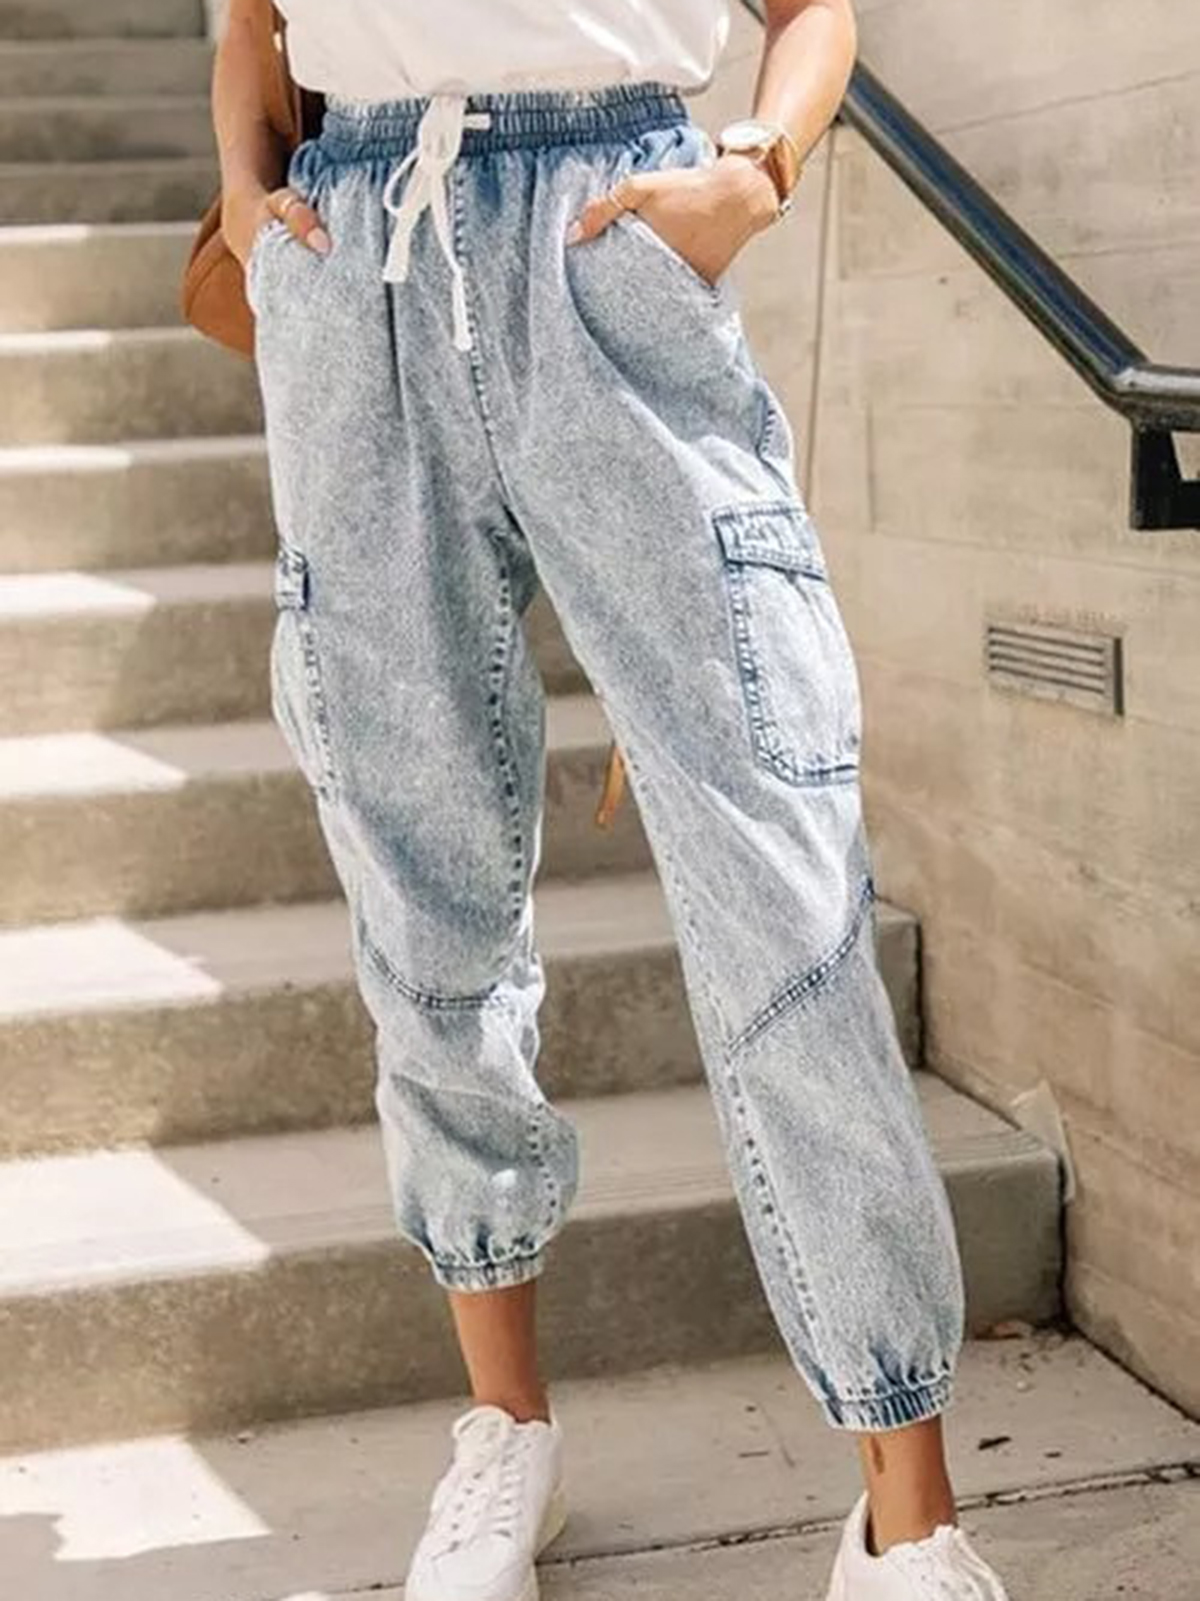 Wash ladies' jeans, lace up jeans and trousers